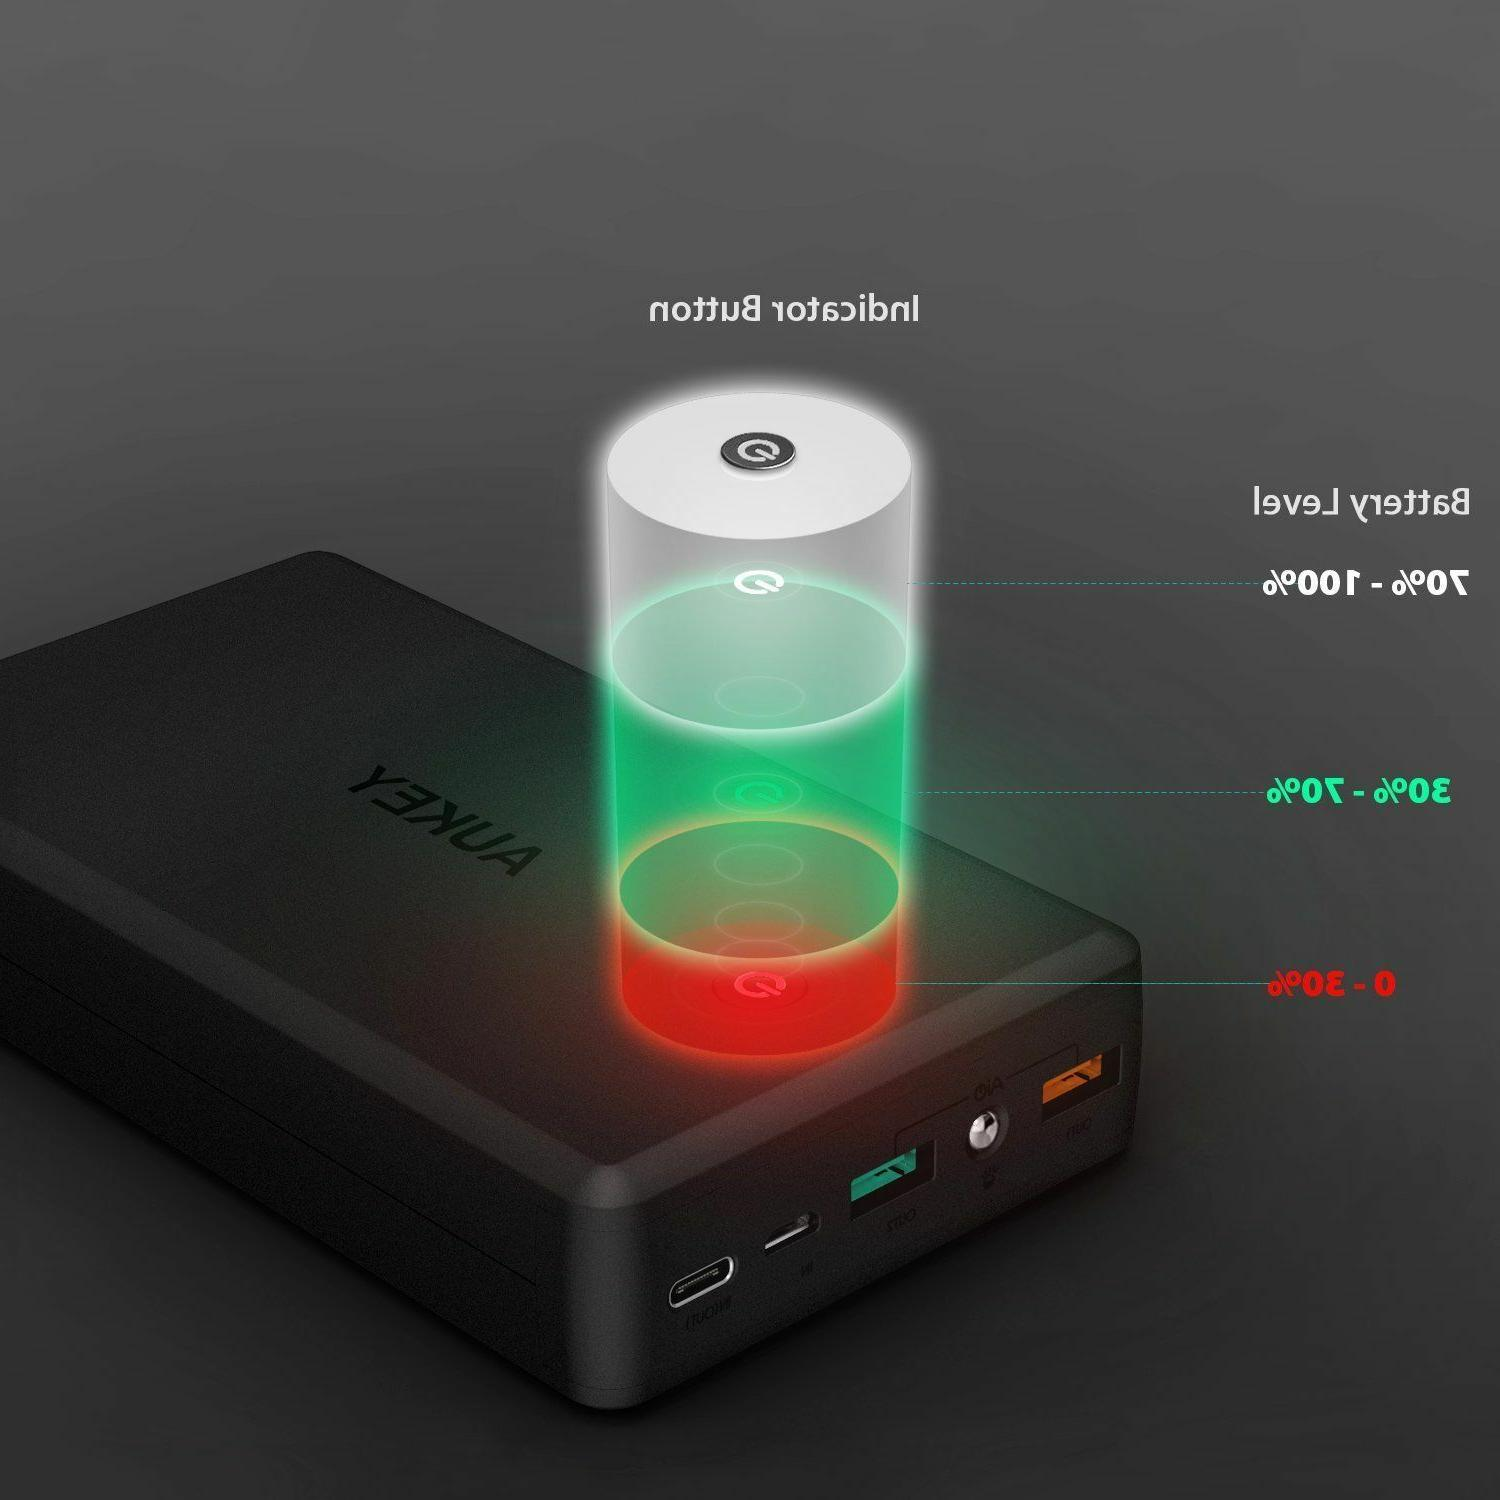 AUKEY Power Bank Open Box